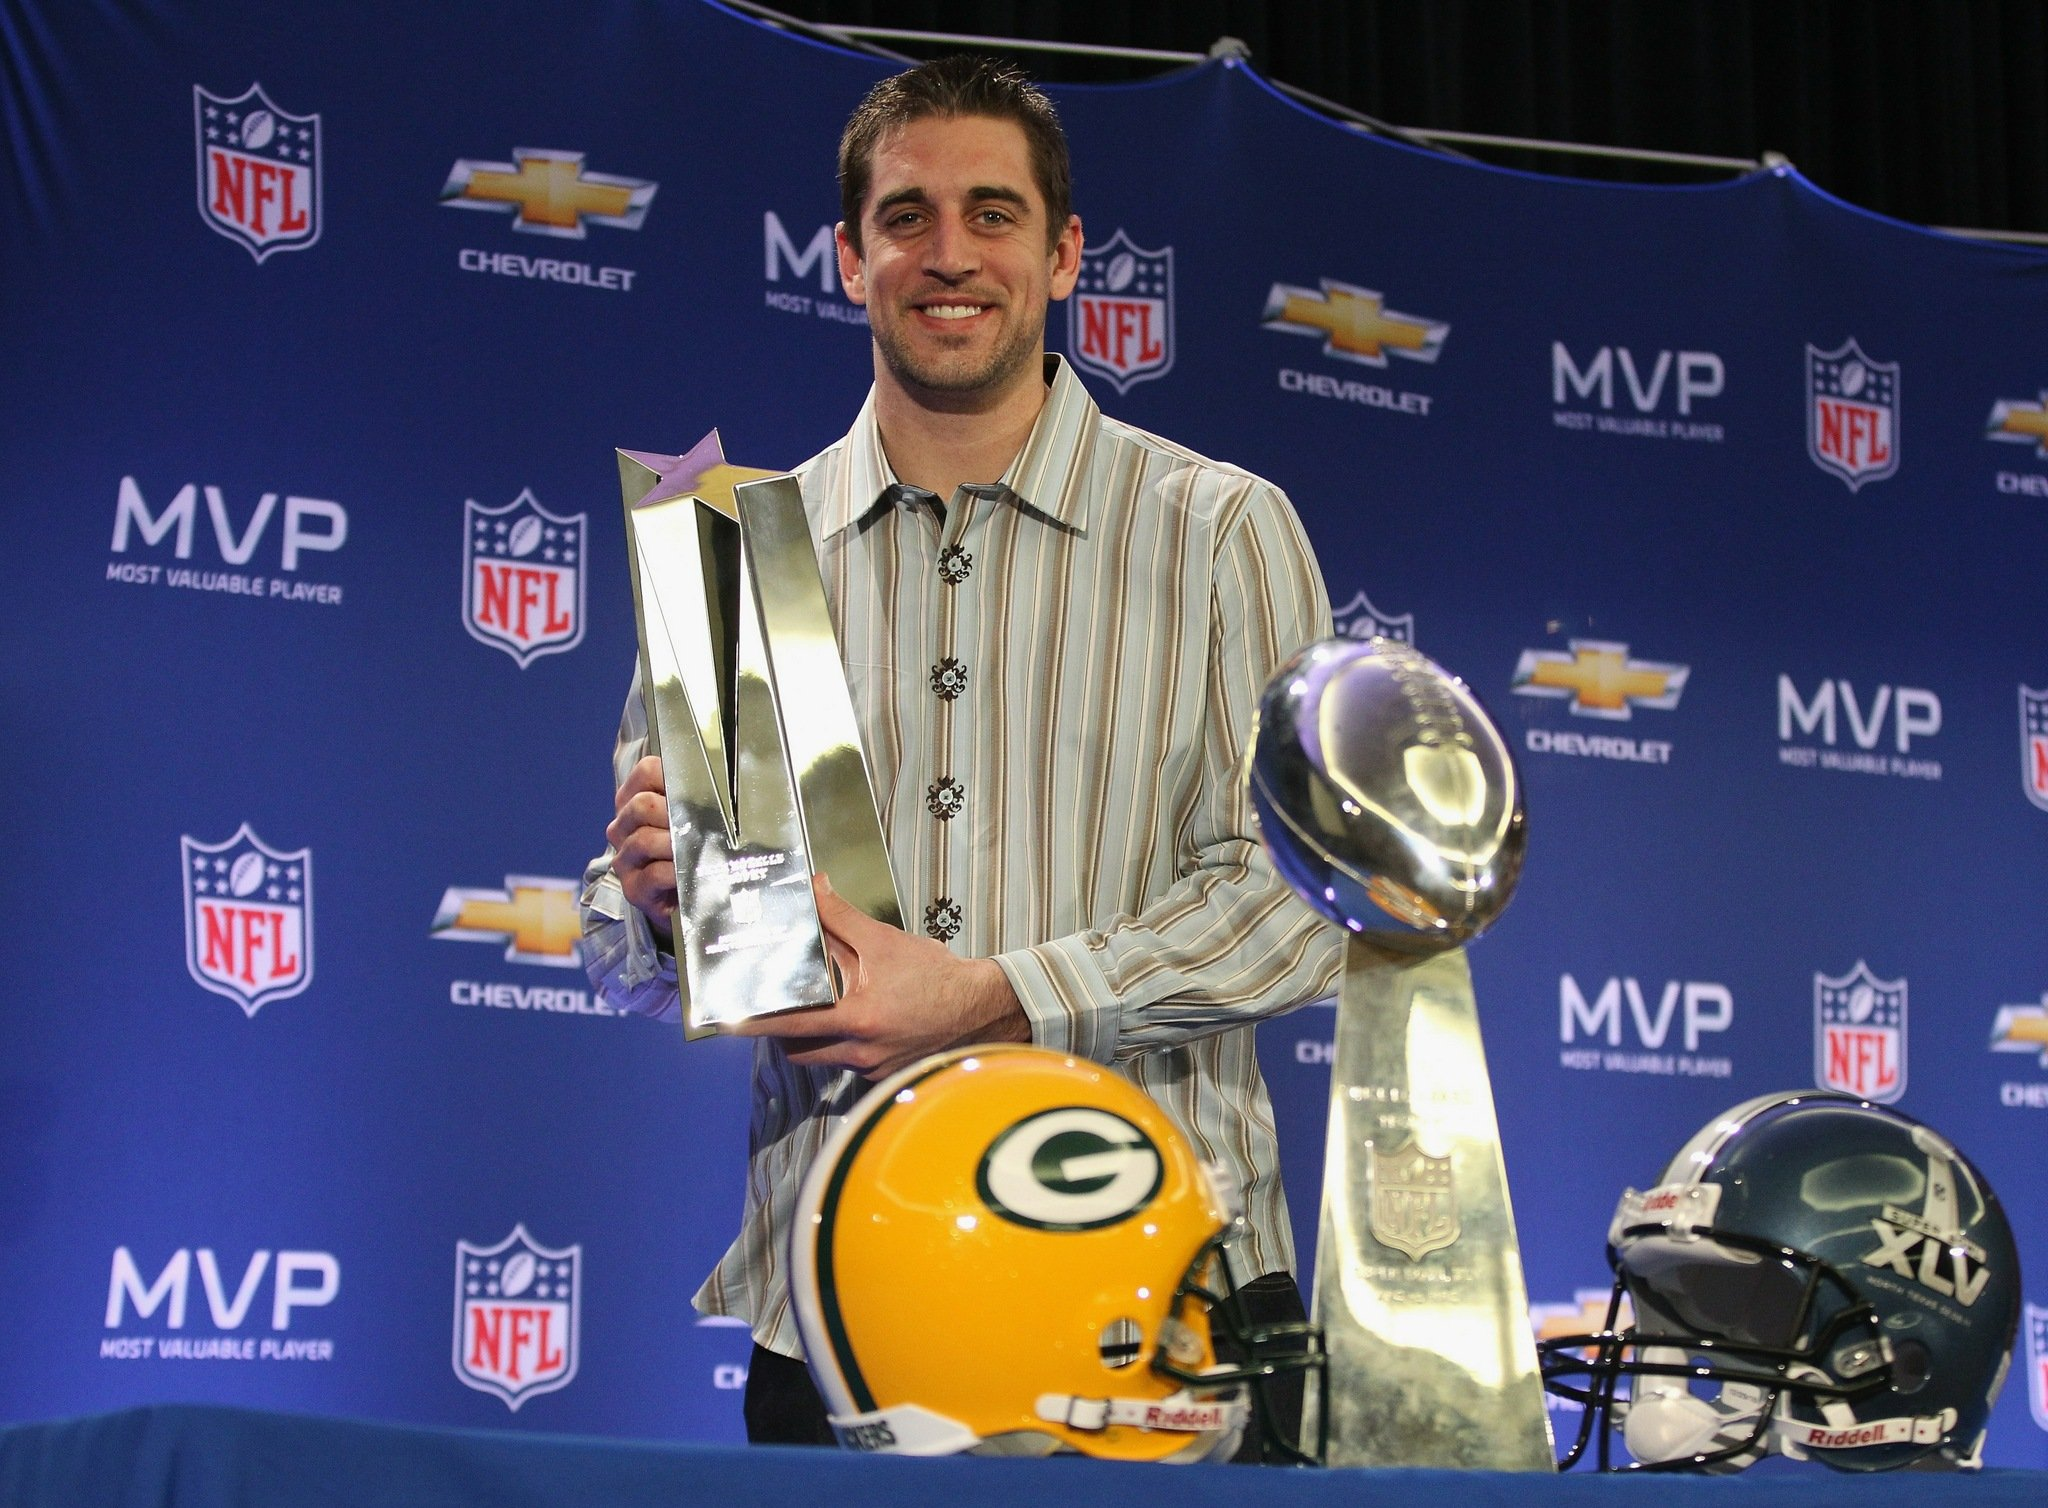 Corner For Packers Qb Aaron A Career Defined By Patience Pays Dividends Packers Qb Aaron A Career Defined By Patience Pays Aaron Rodgers Commercial Endorsements Aaron Rodgers Commercial Hotel bark post Aaron Rodgers Commercial